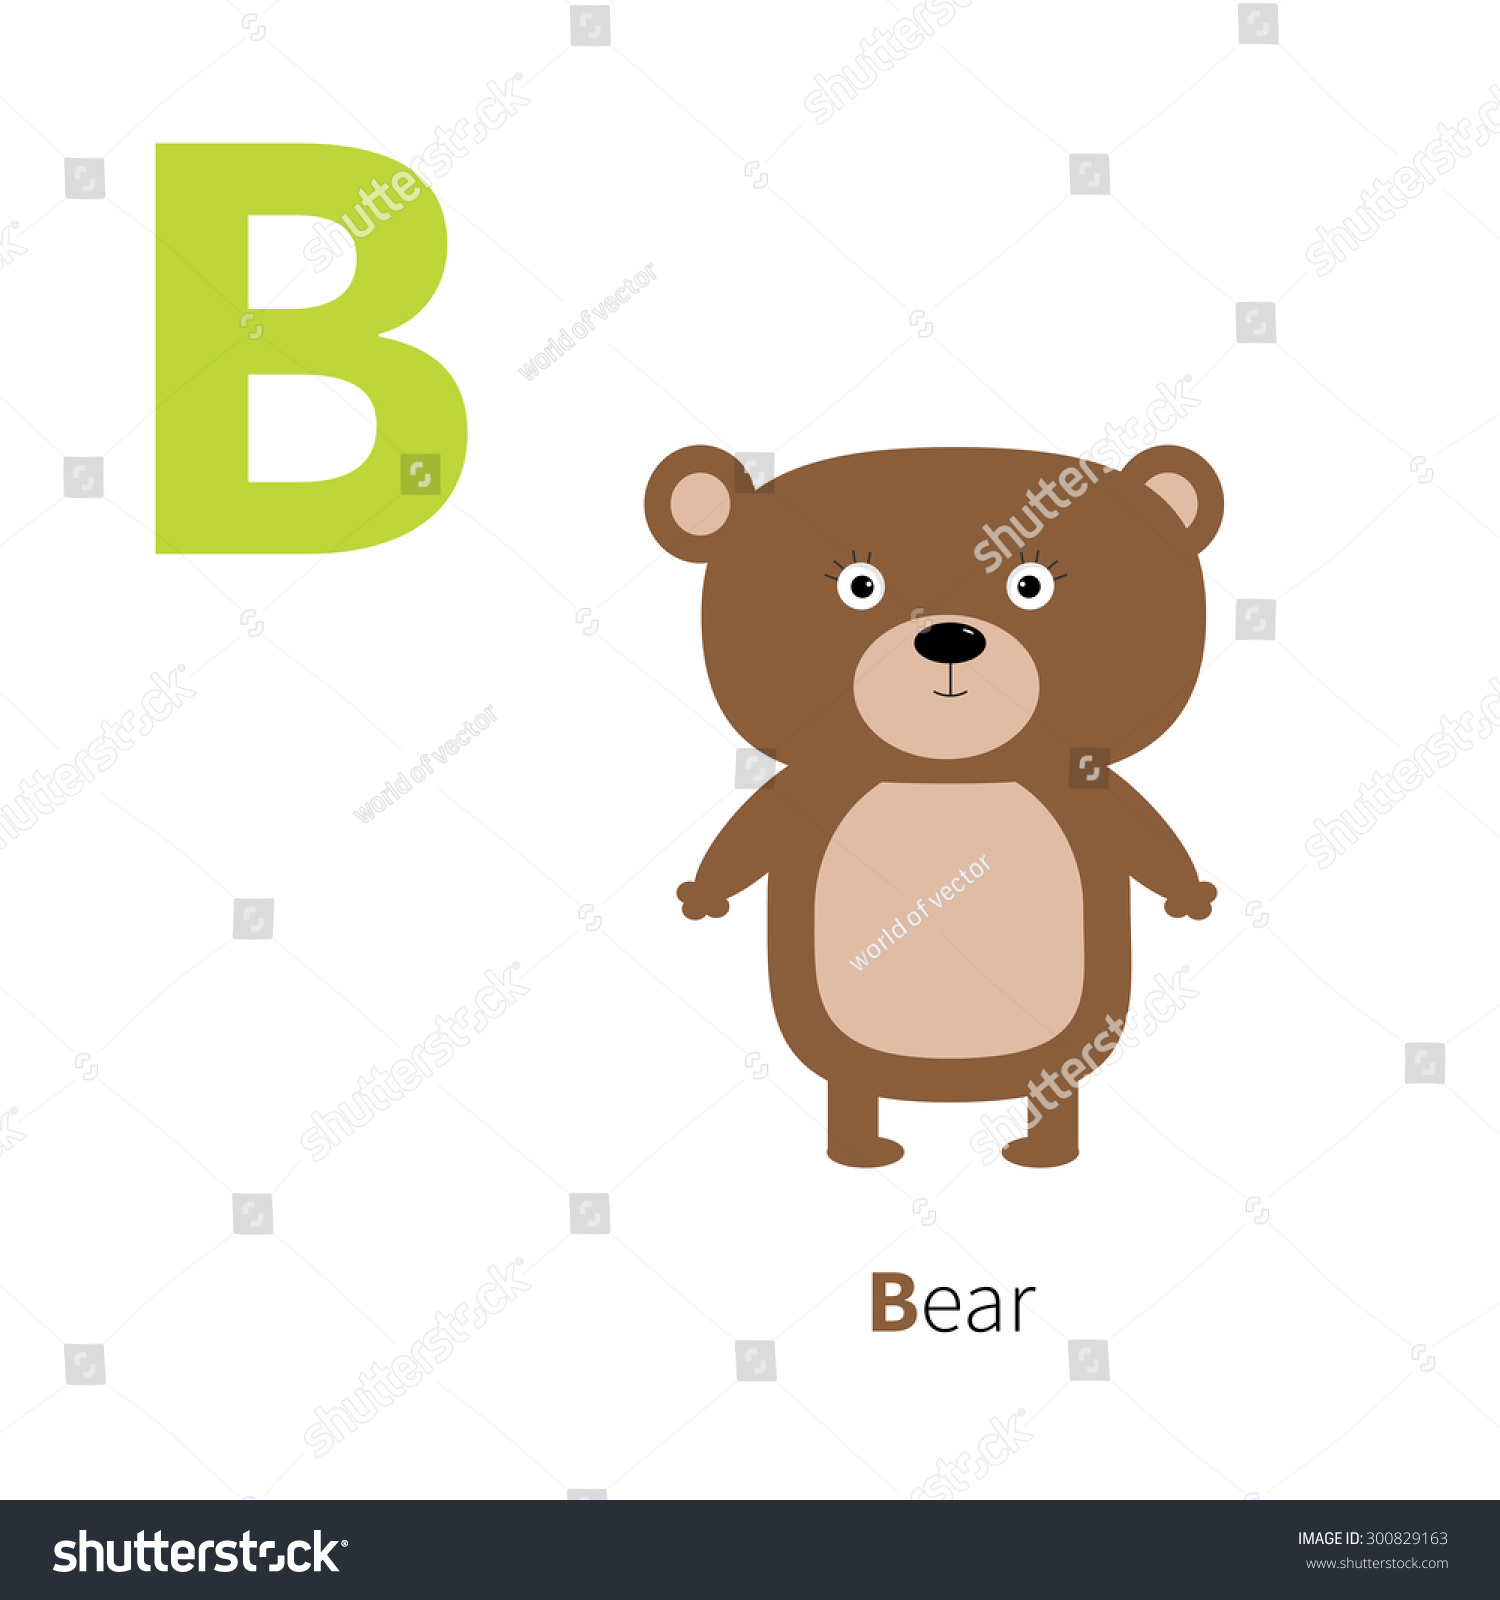 Letter B Bear Zoo Alphabet English Abc Letters With Animals Education Cards For Kids Isolated